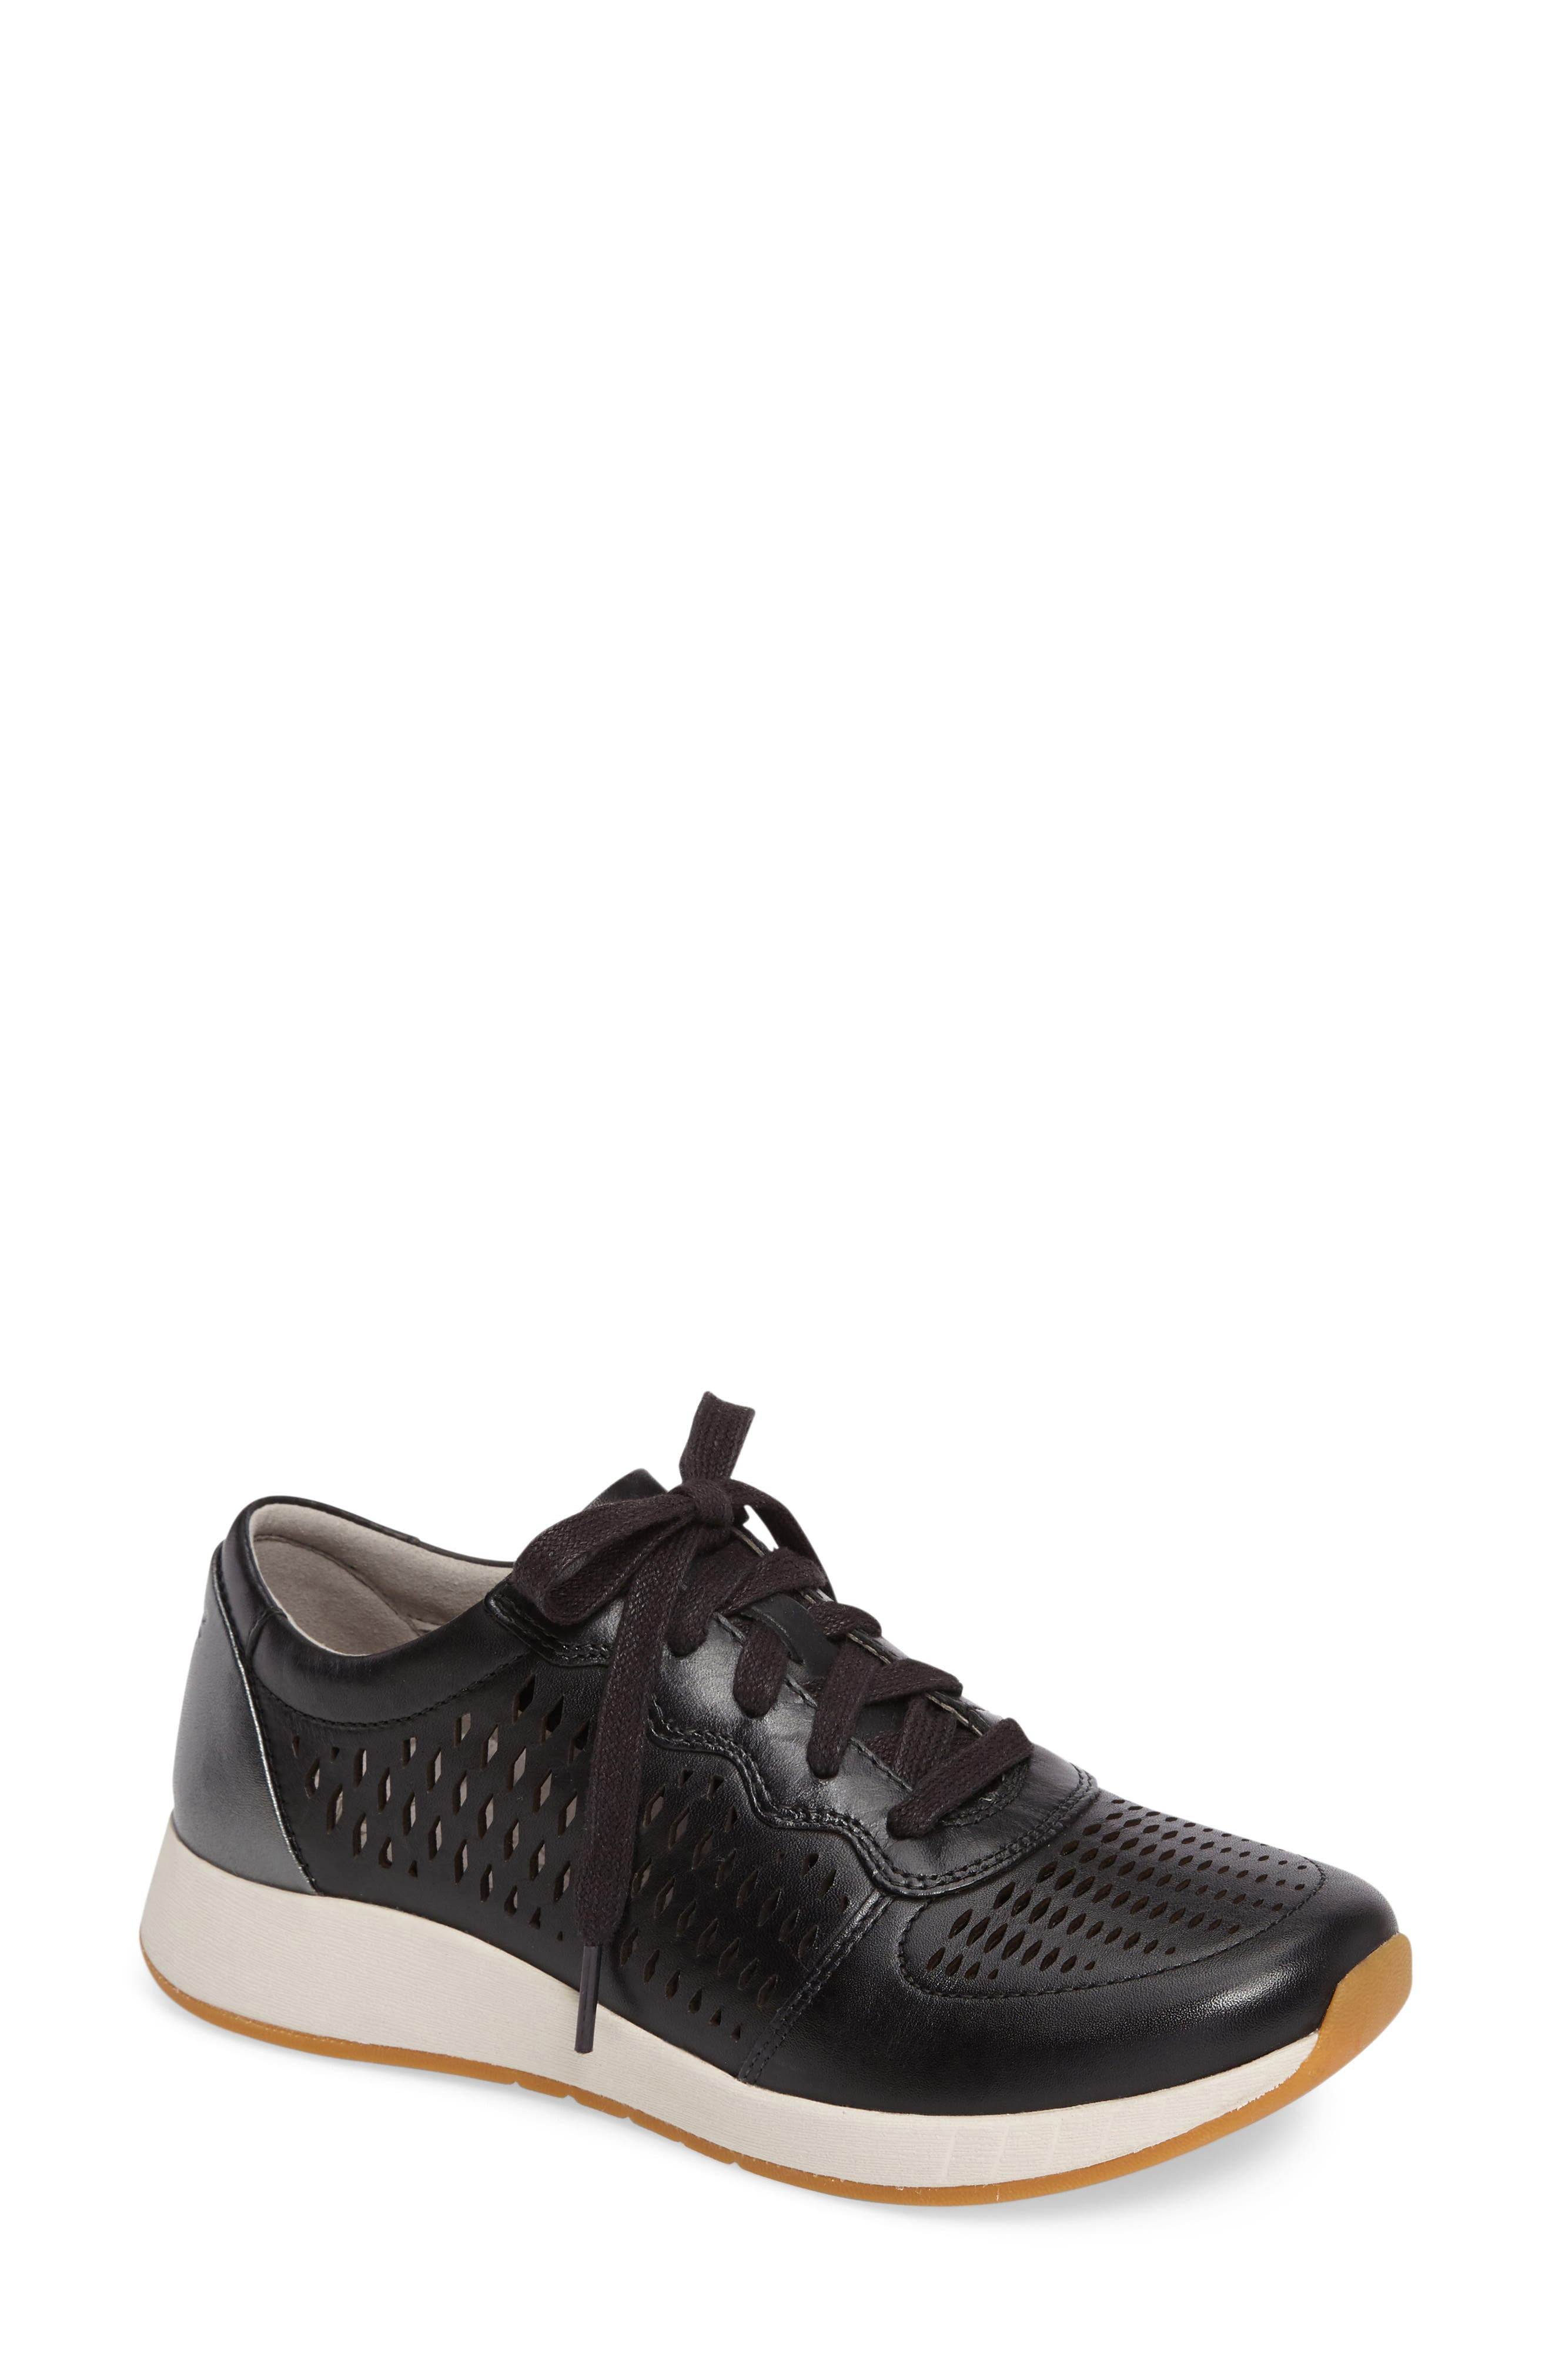 Charlie Perforated Sneaker,                         Main,                         color, Black Leather